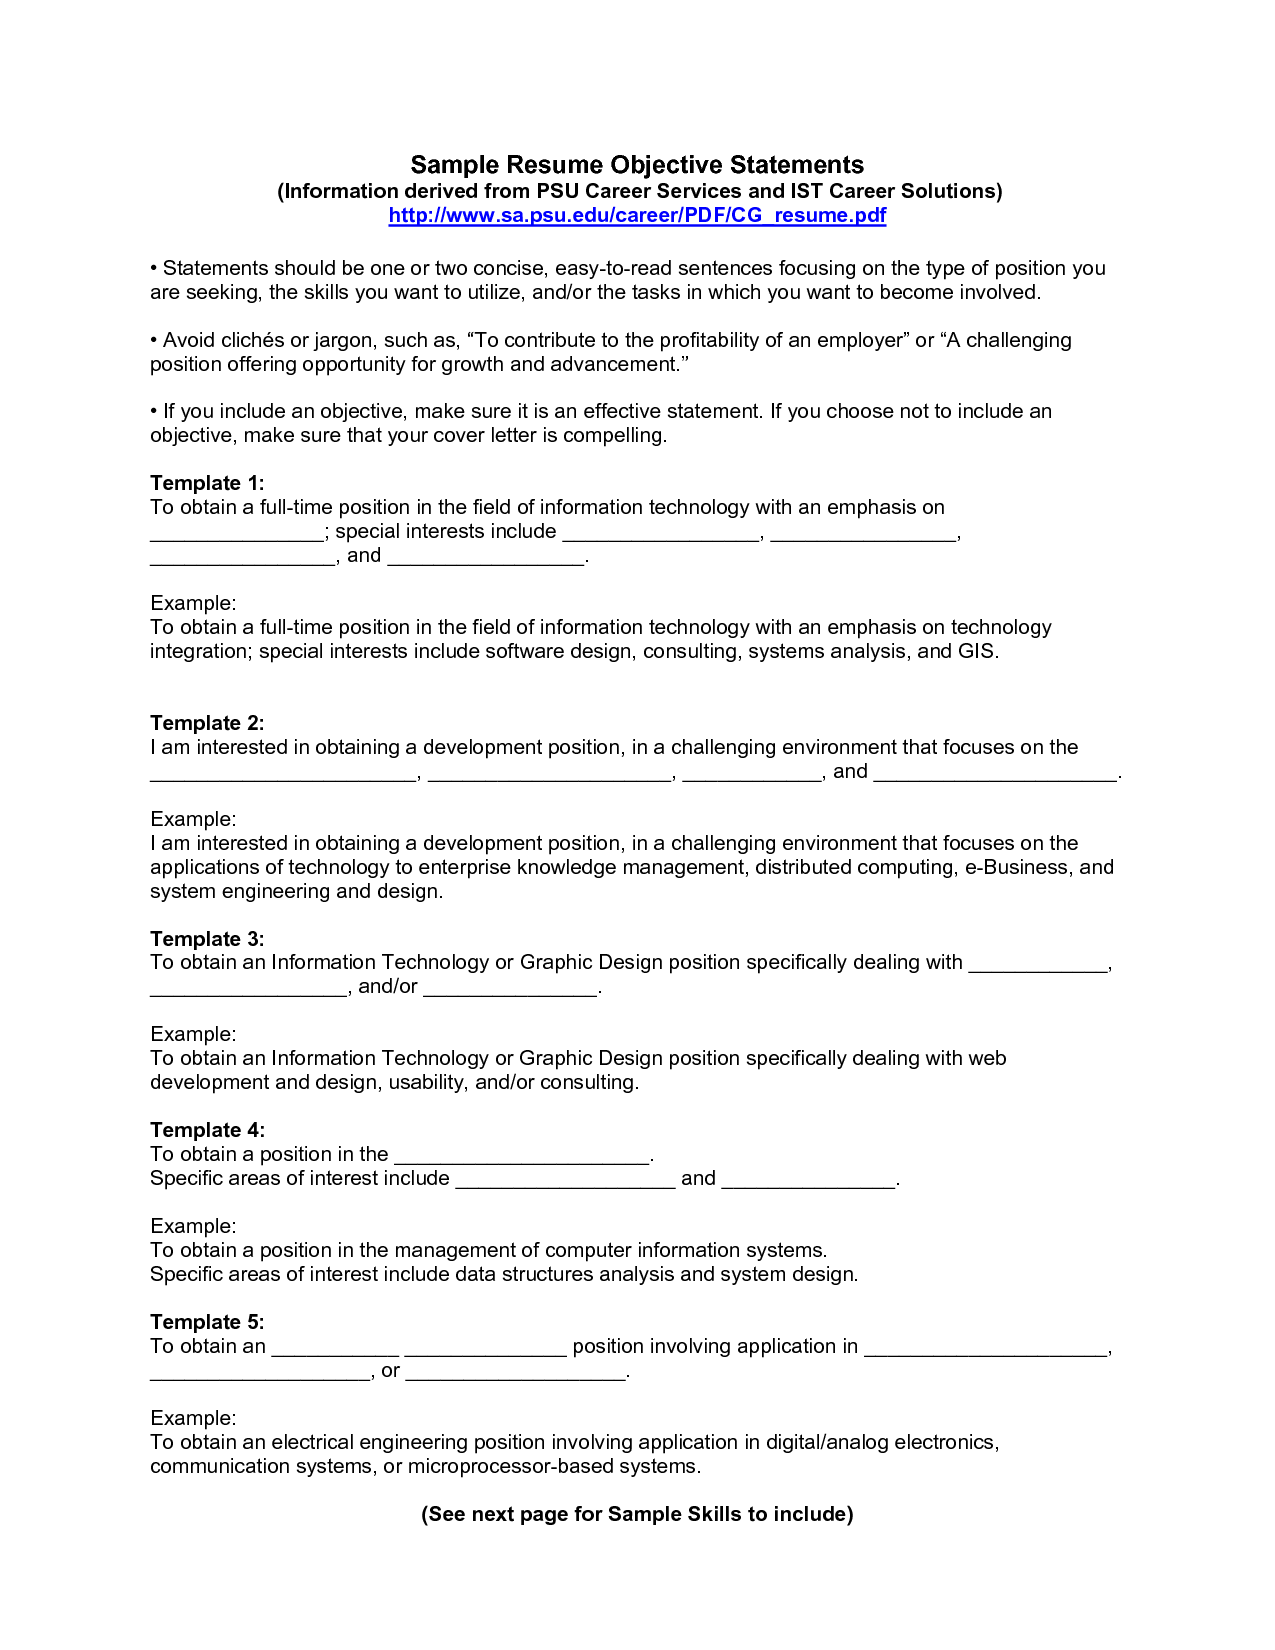 objective statement resume example - Tire.driveeasy.co